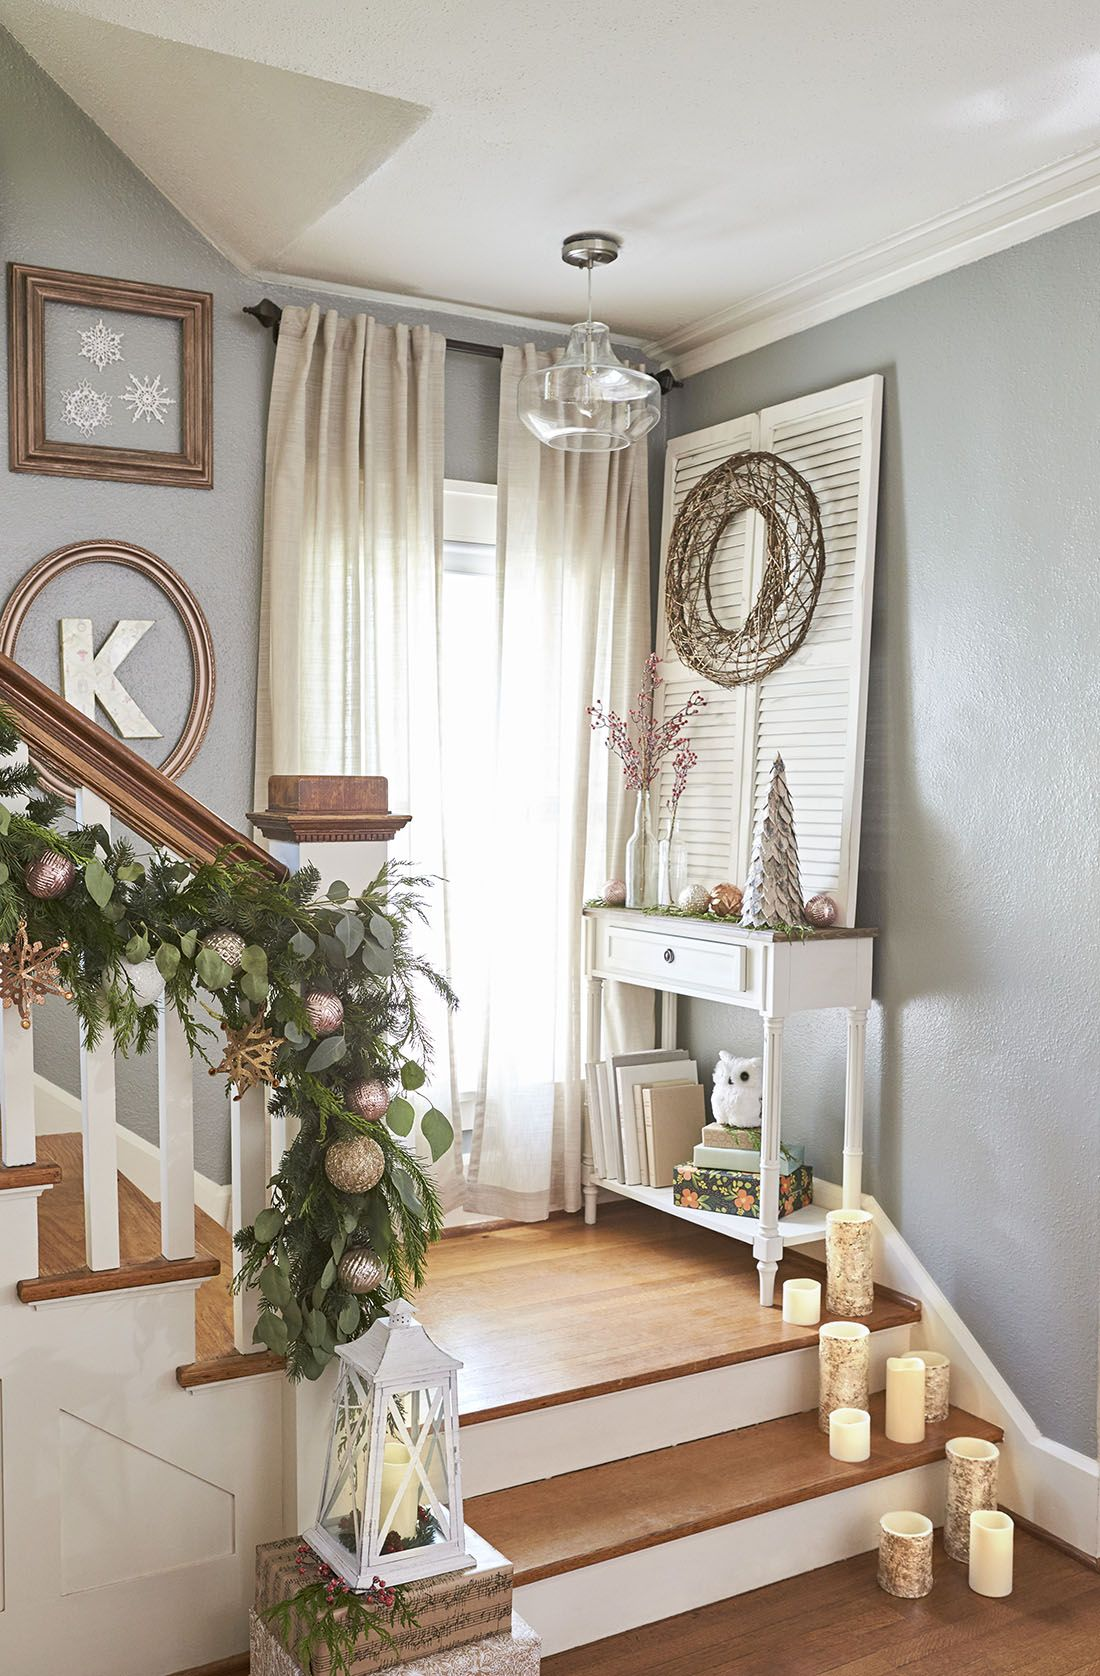 lowes decorating ideas for living rooms best floor lamps room stair landings are good spots holiday decor. set out ...